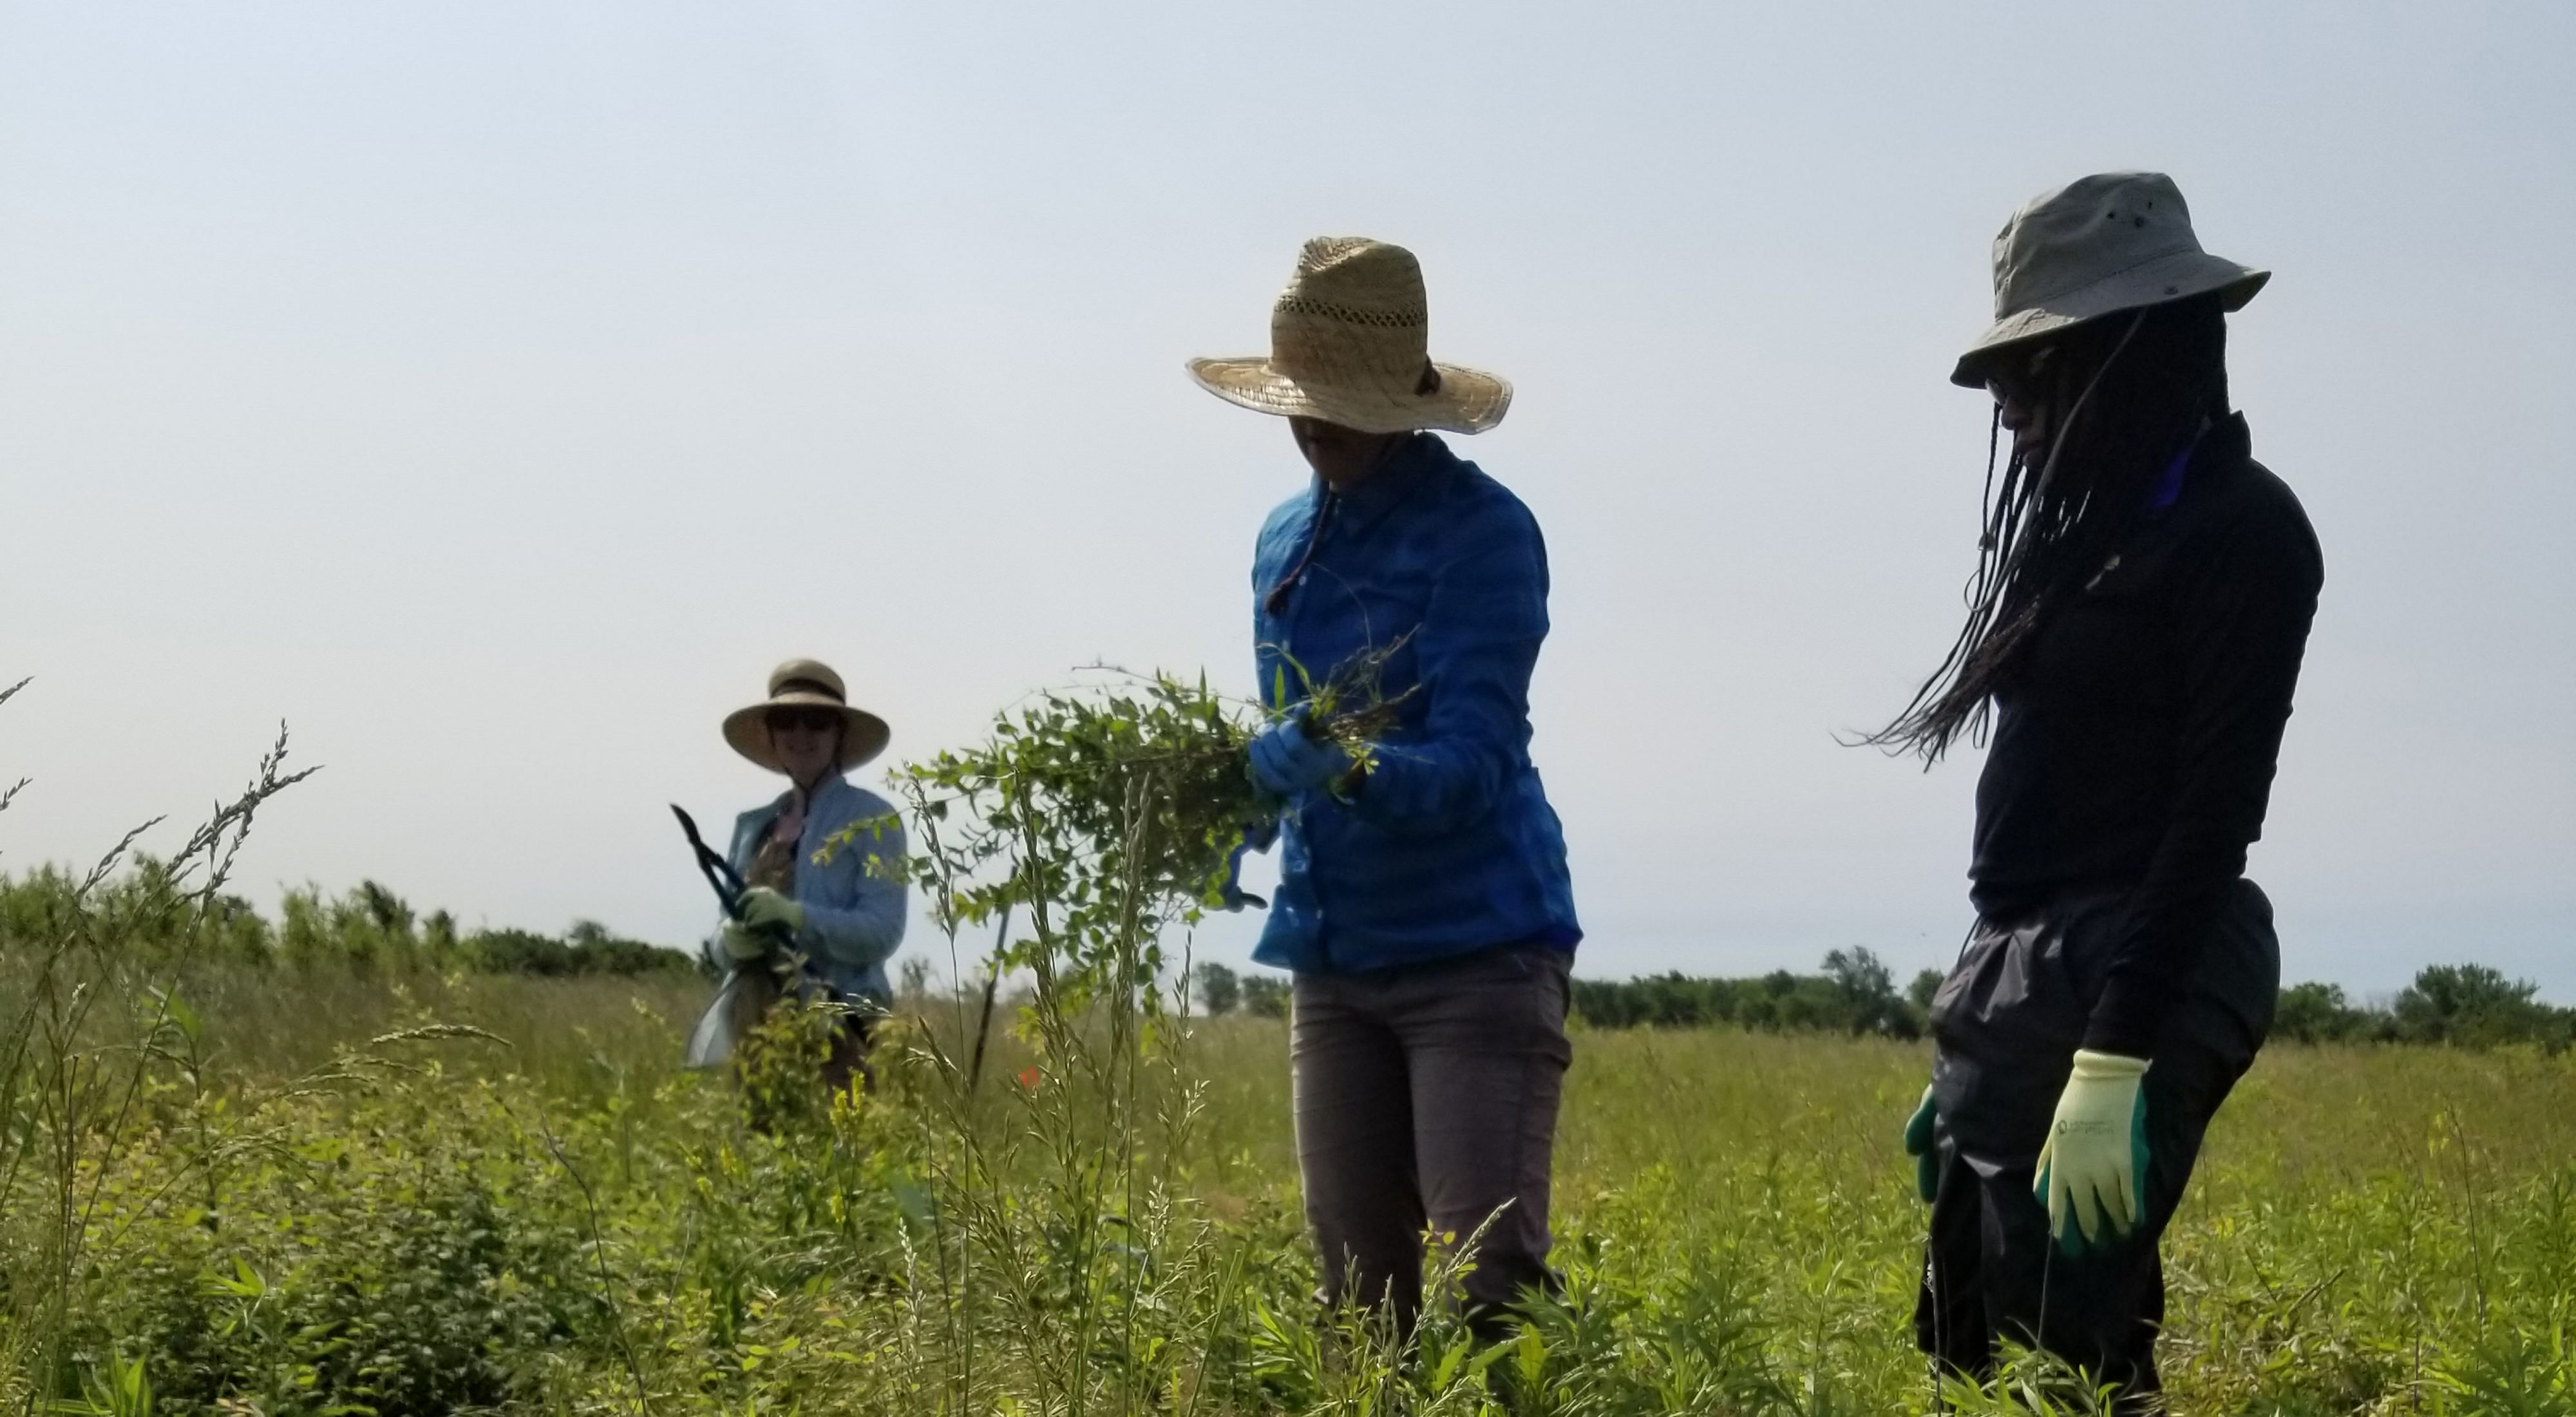 A group of volunteers clear invasive woody plants at Anderson County Prairies in Kansas.